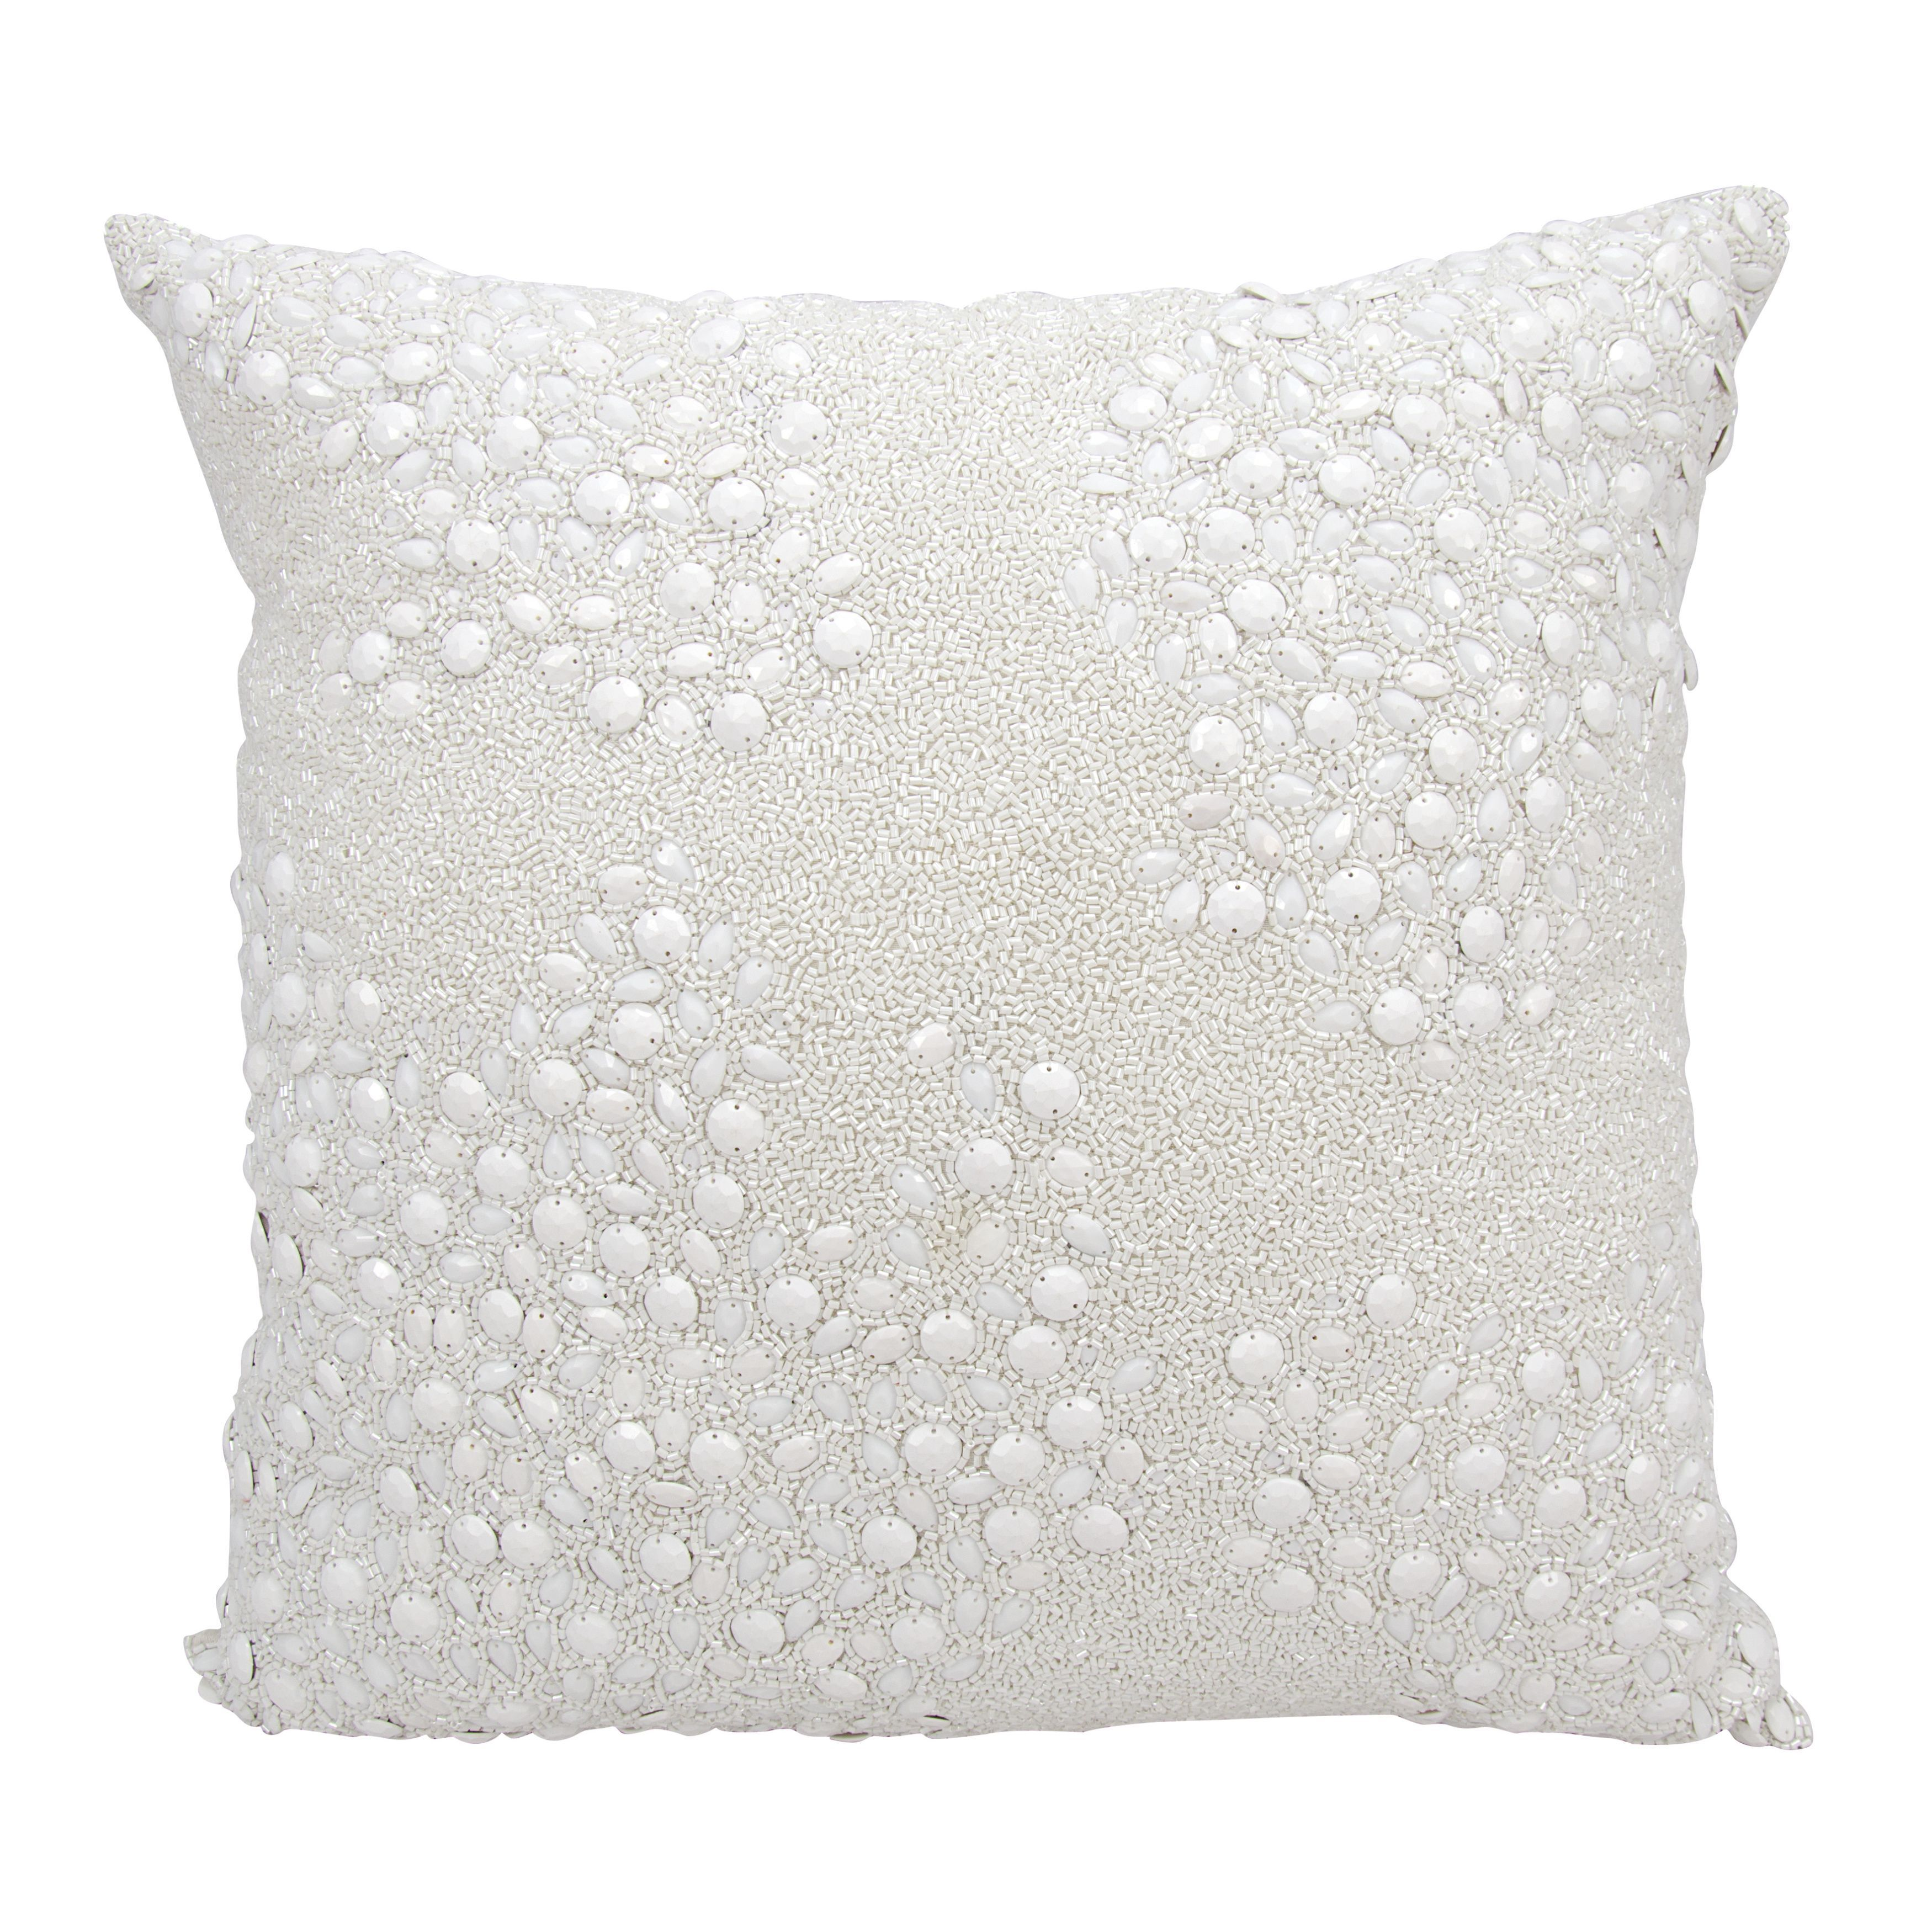 White Accent Pillows 20x20 inch